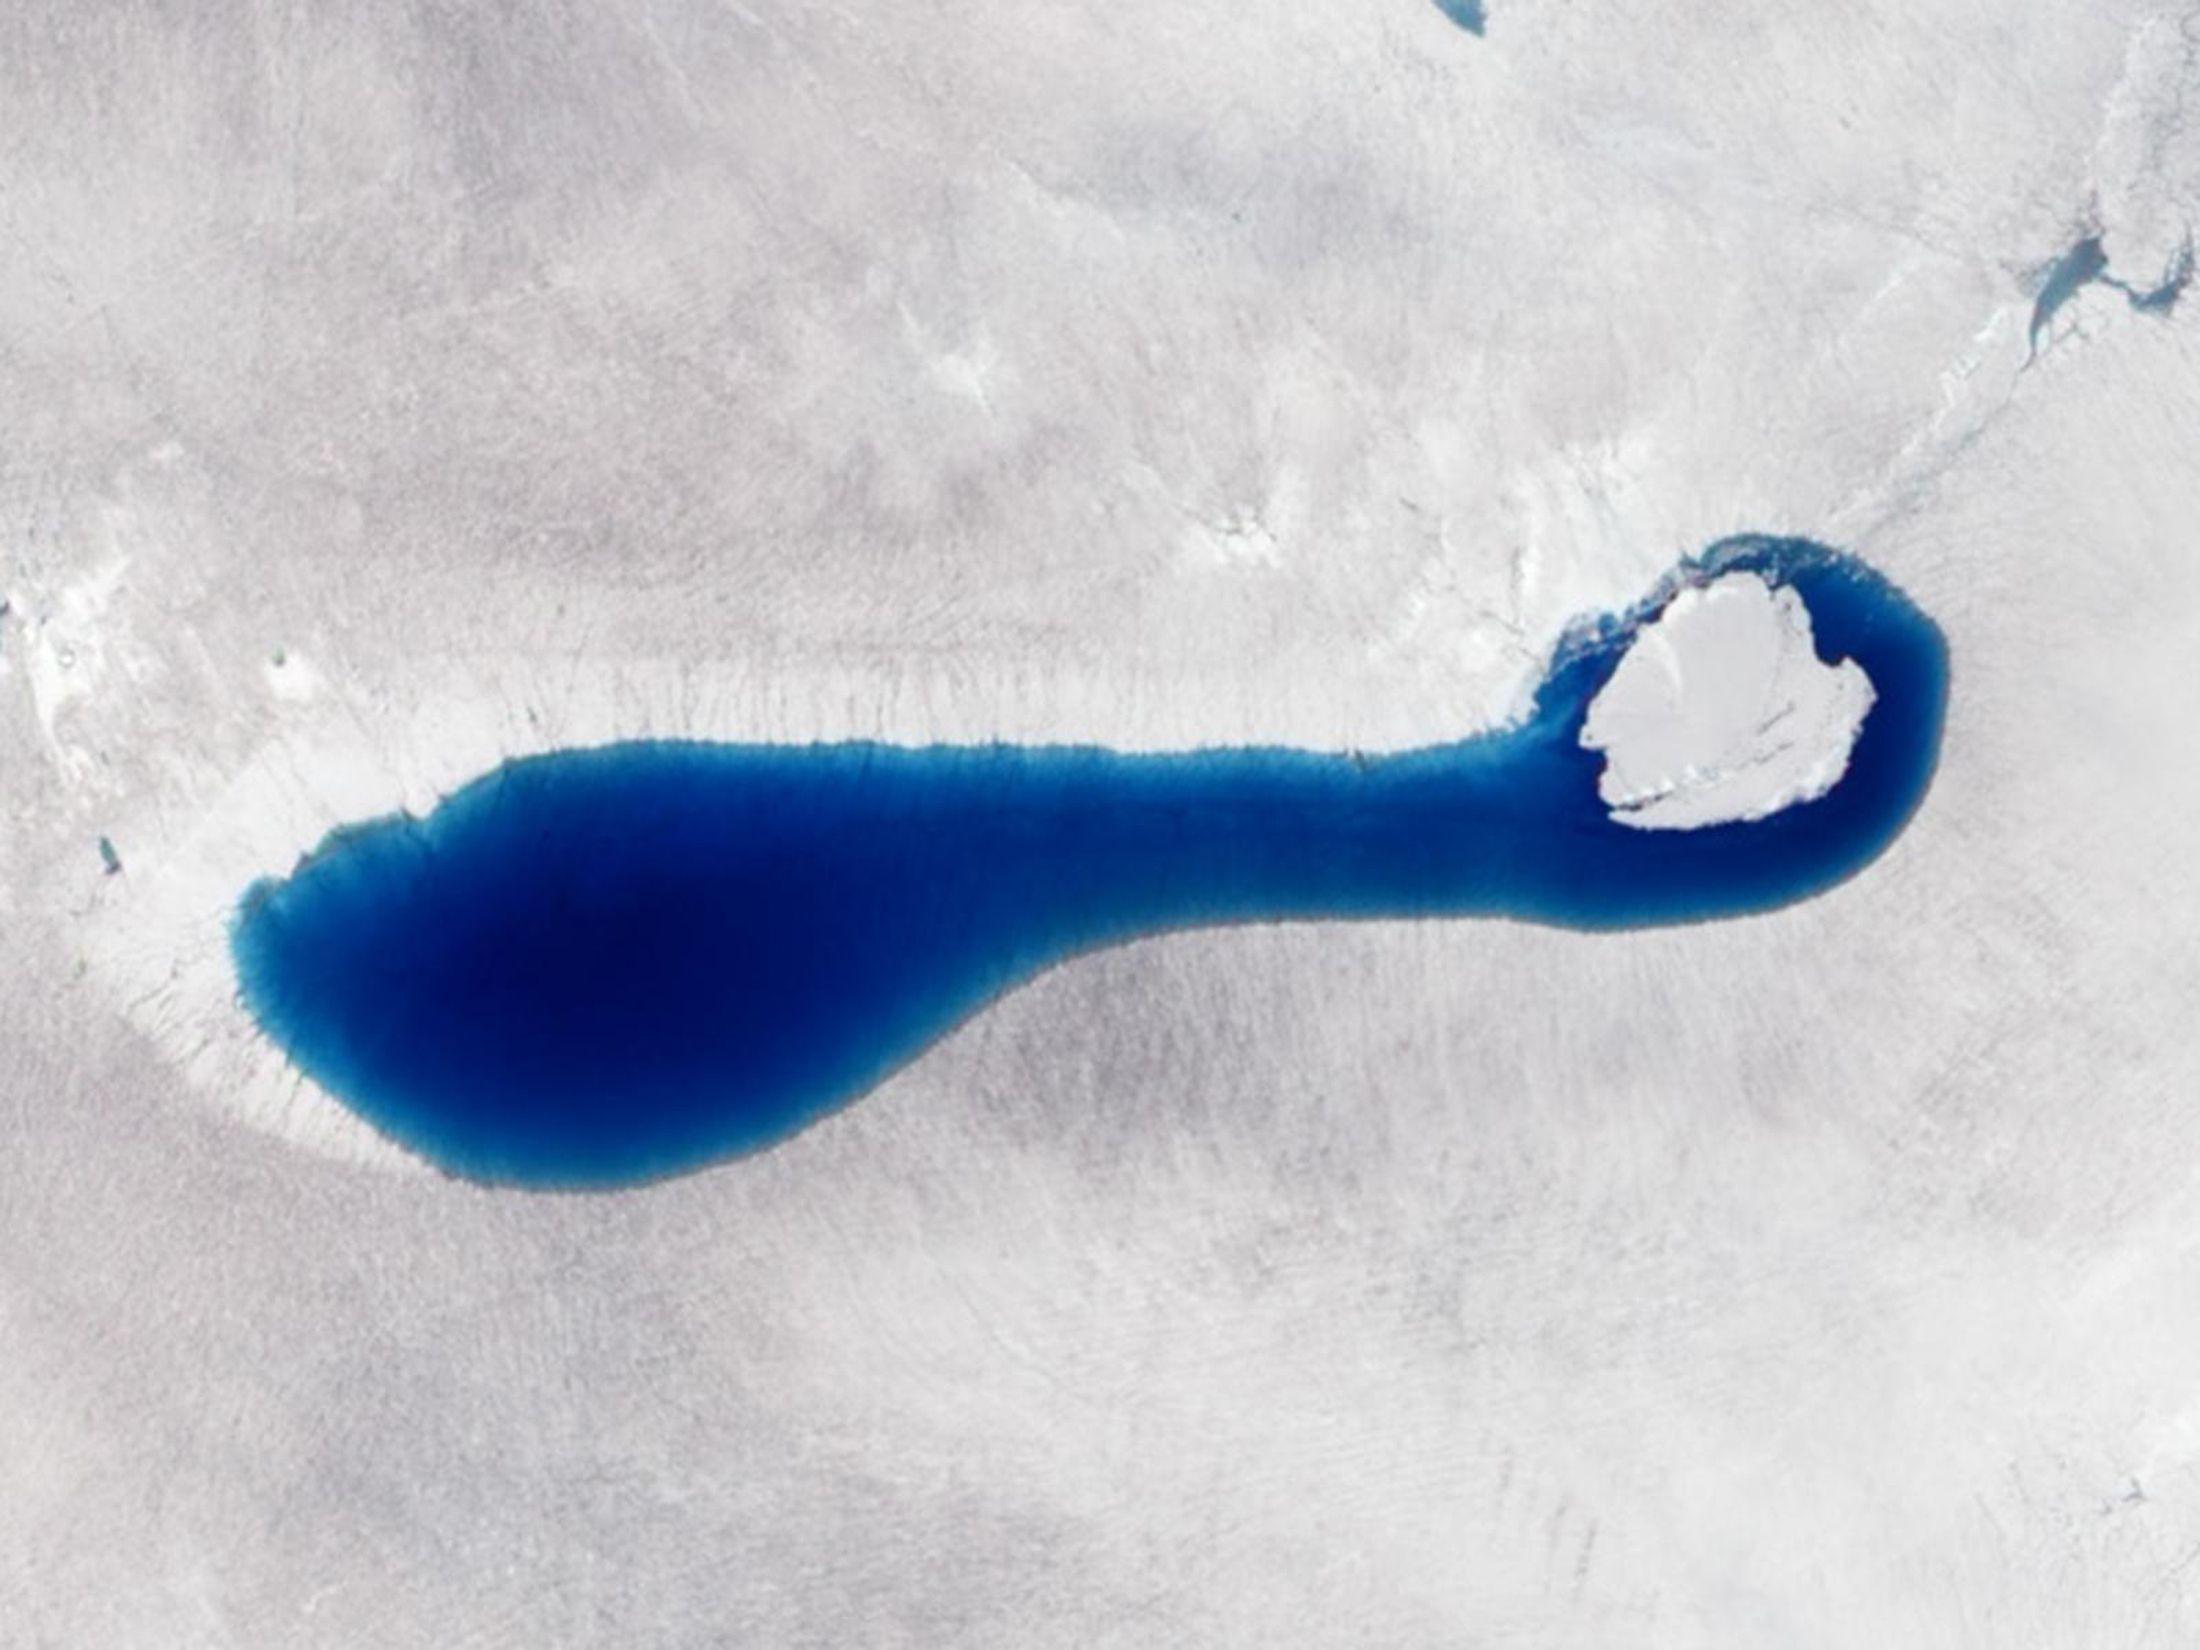 Climate Change Just Caused A Key Mechanism on Greenland's Ice Sheet to Backfire